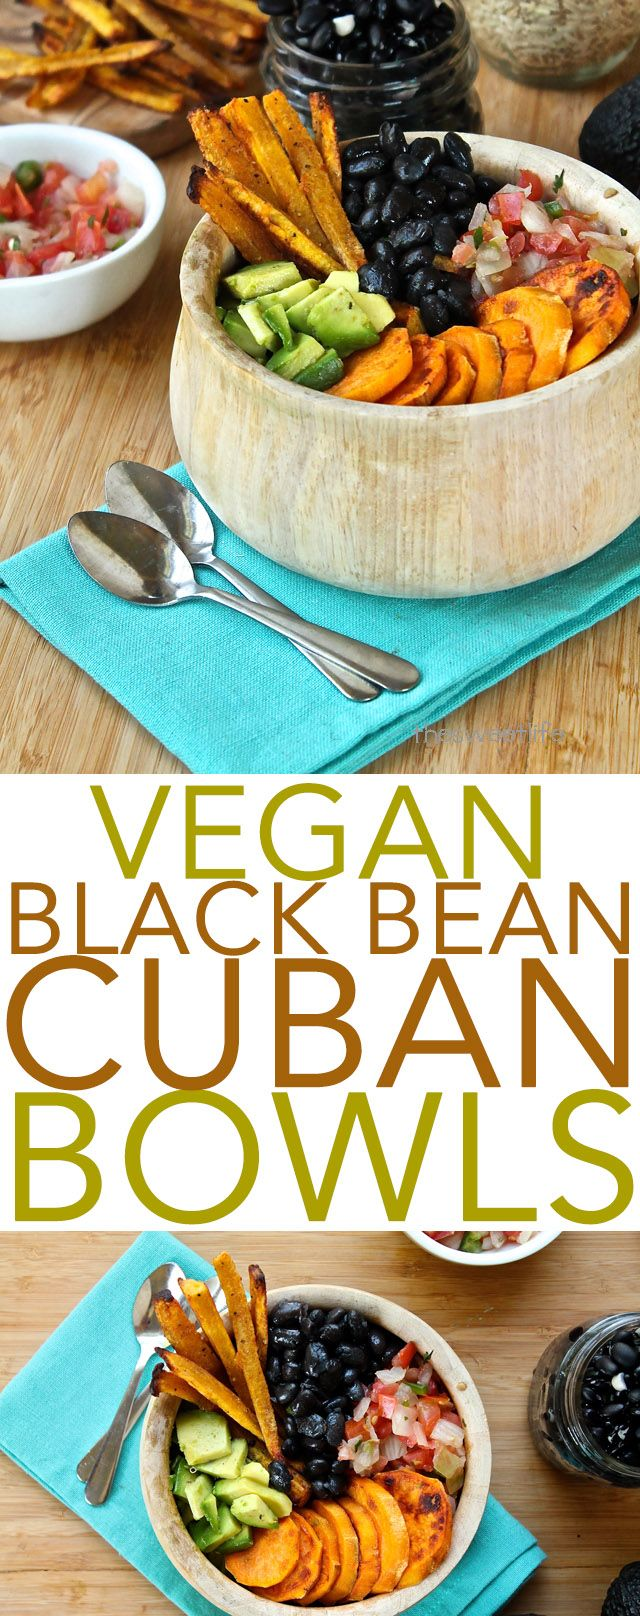 Black beans, sweet potatoes, and plantain fries, this vegan Cuban bowl has it all. Click the photo for the full recipe.